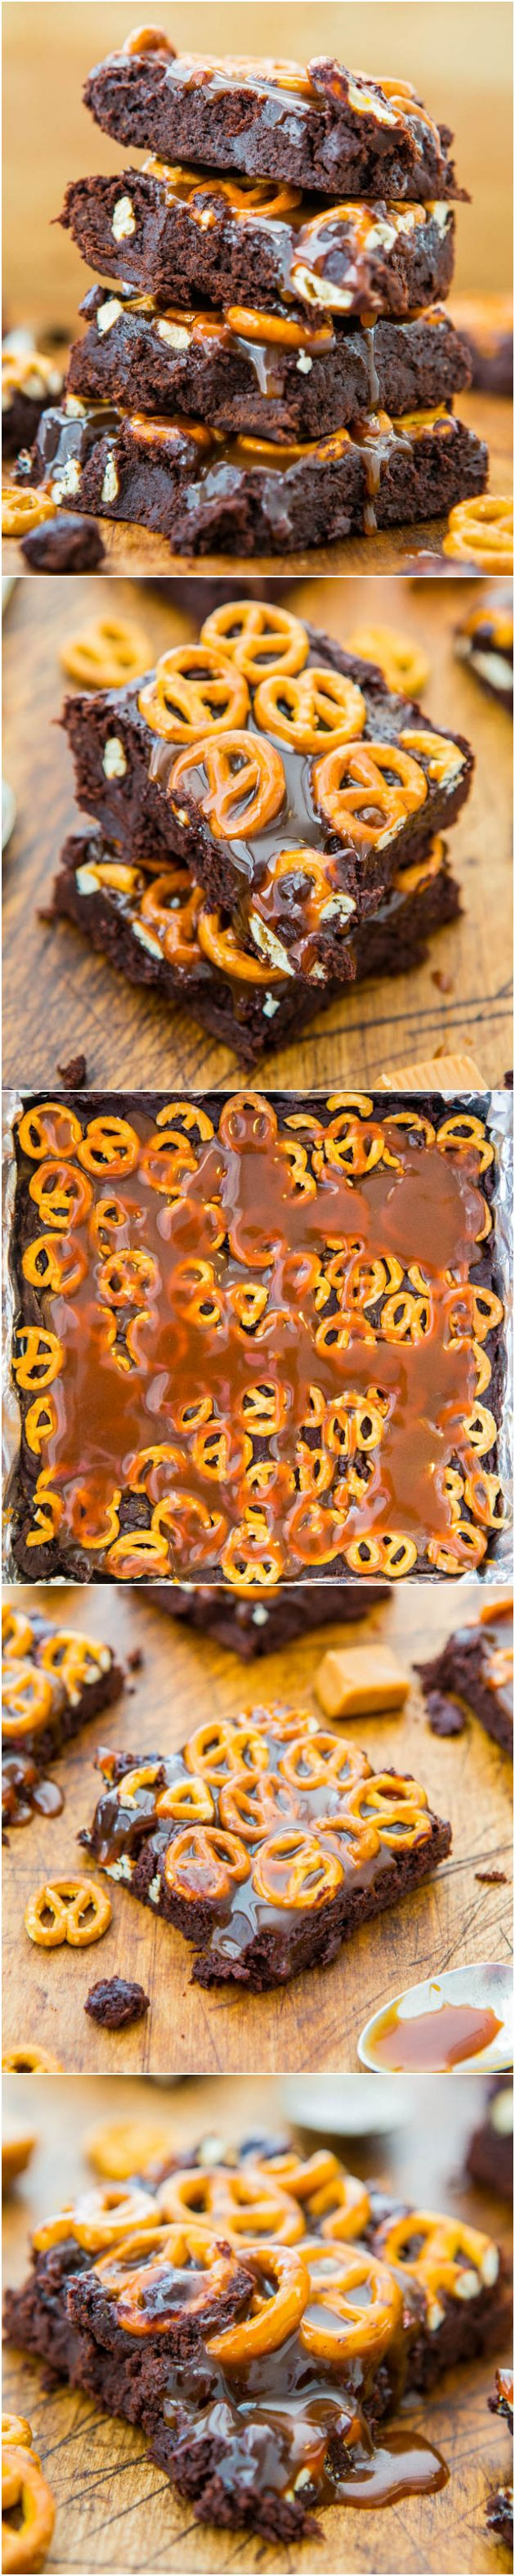 Salted Caramel Pretzel-Topped Fudgy Brownies | Fudgy Brownies, Salted ...